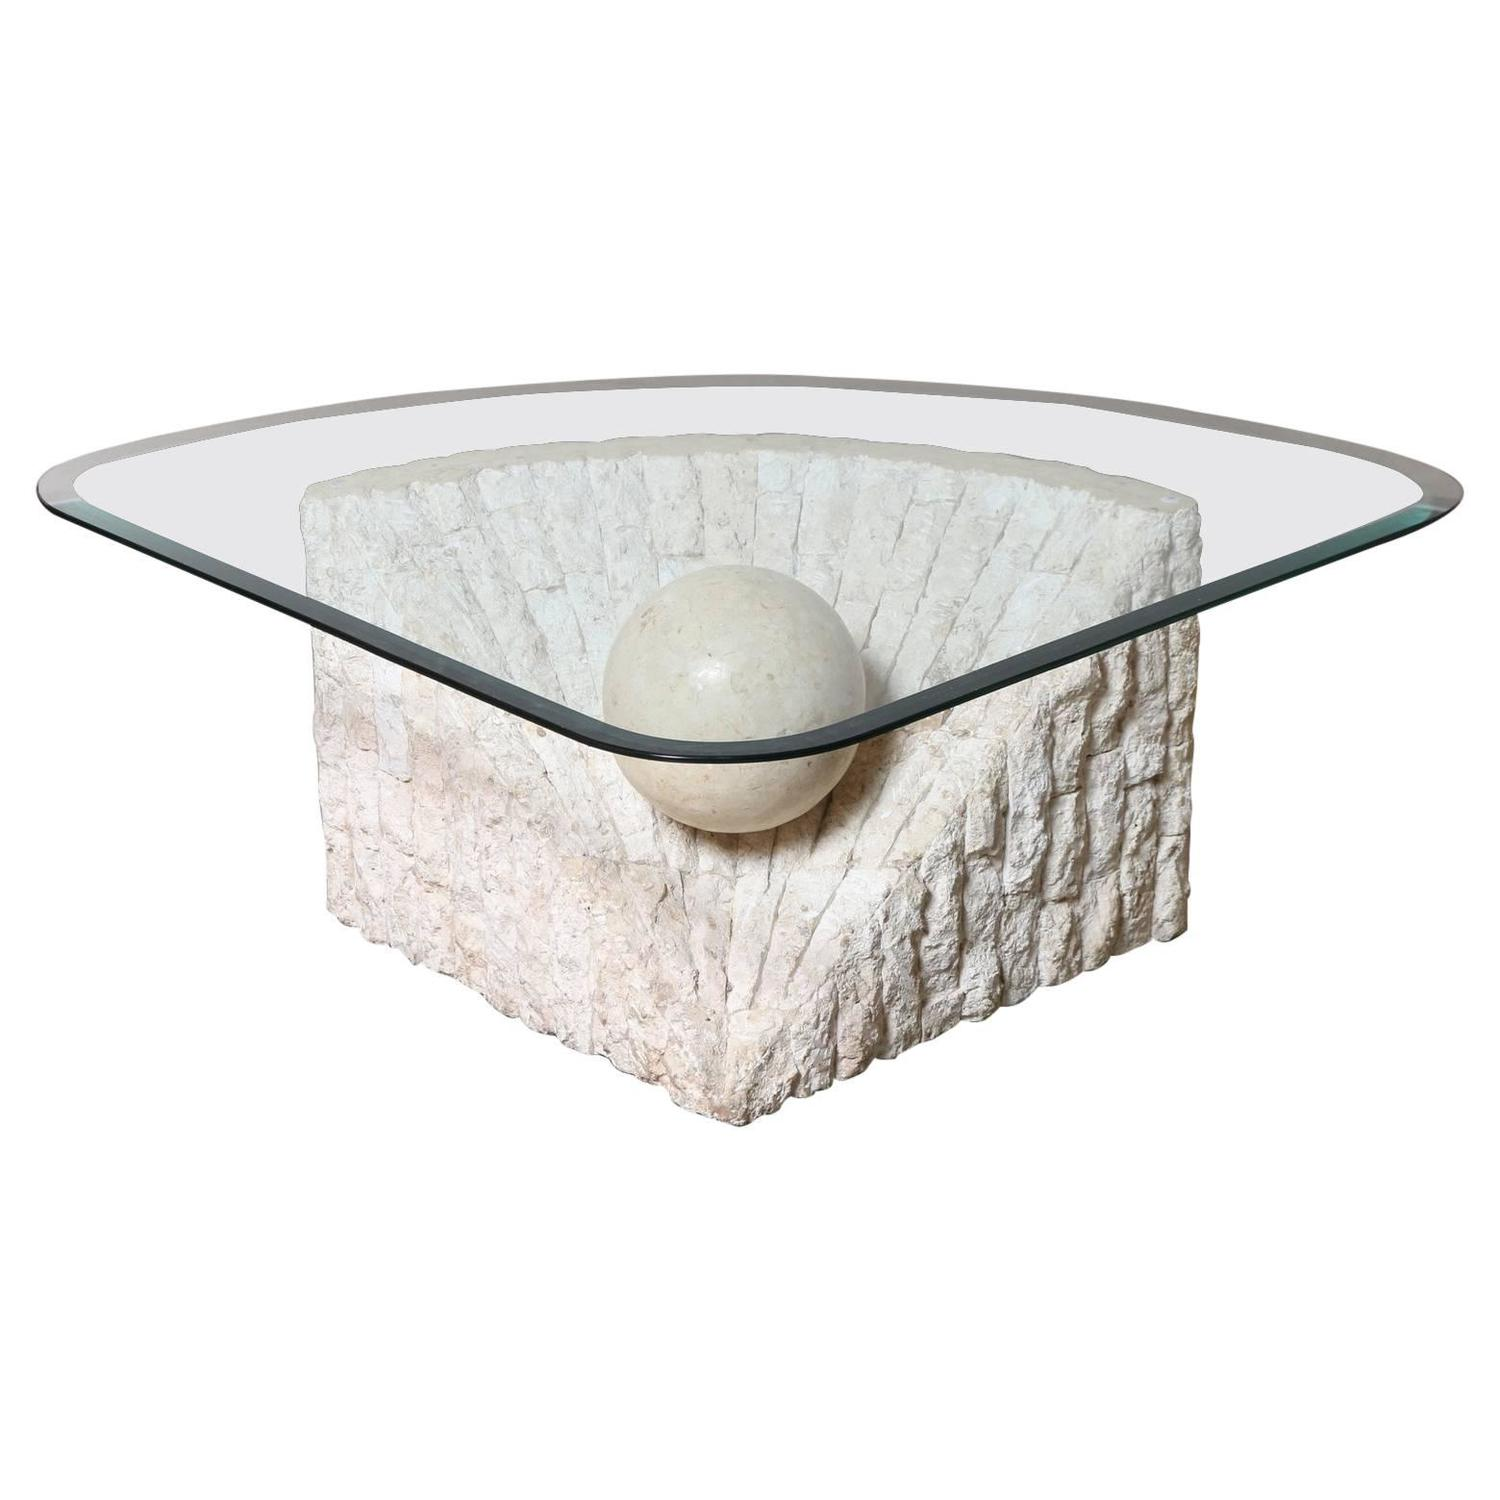 Triangular Marble and Travertine Coffee Table with Beveled Edge